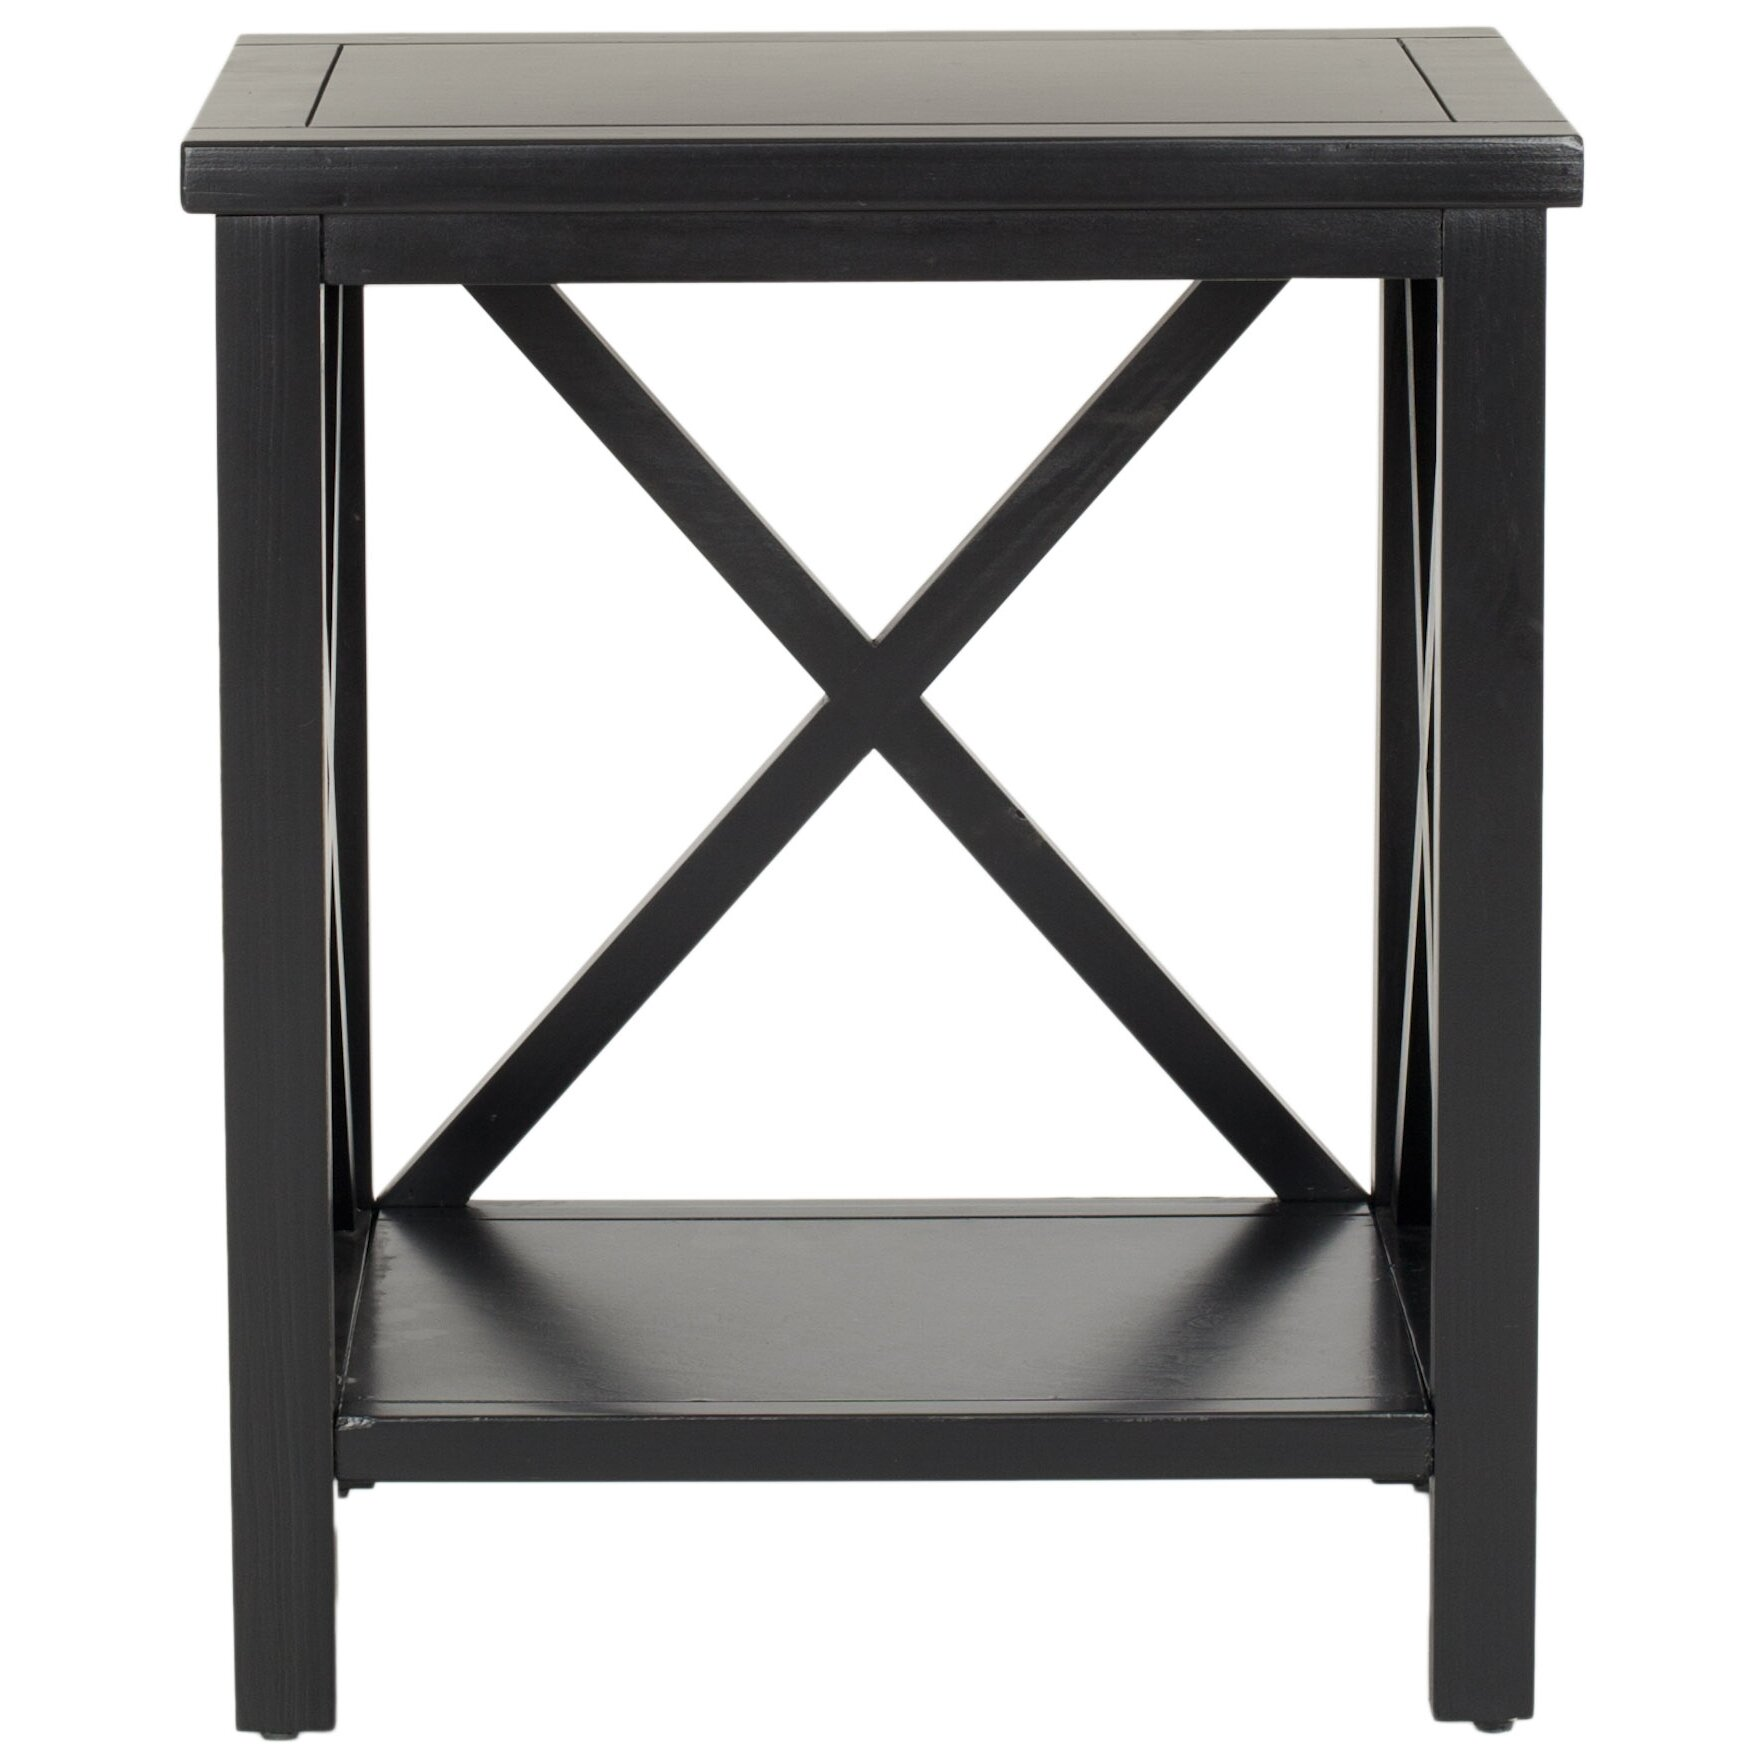 Breakwater Bay Newbury End Table amp Reviews Wayfair : NewburyEndTable from www.wayfair.com size 1758 x 1758 jpeg 165kB